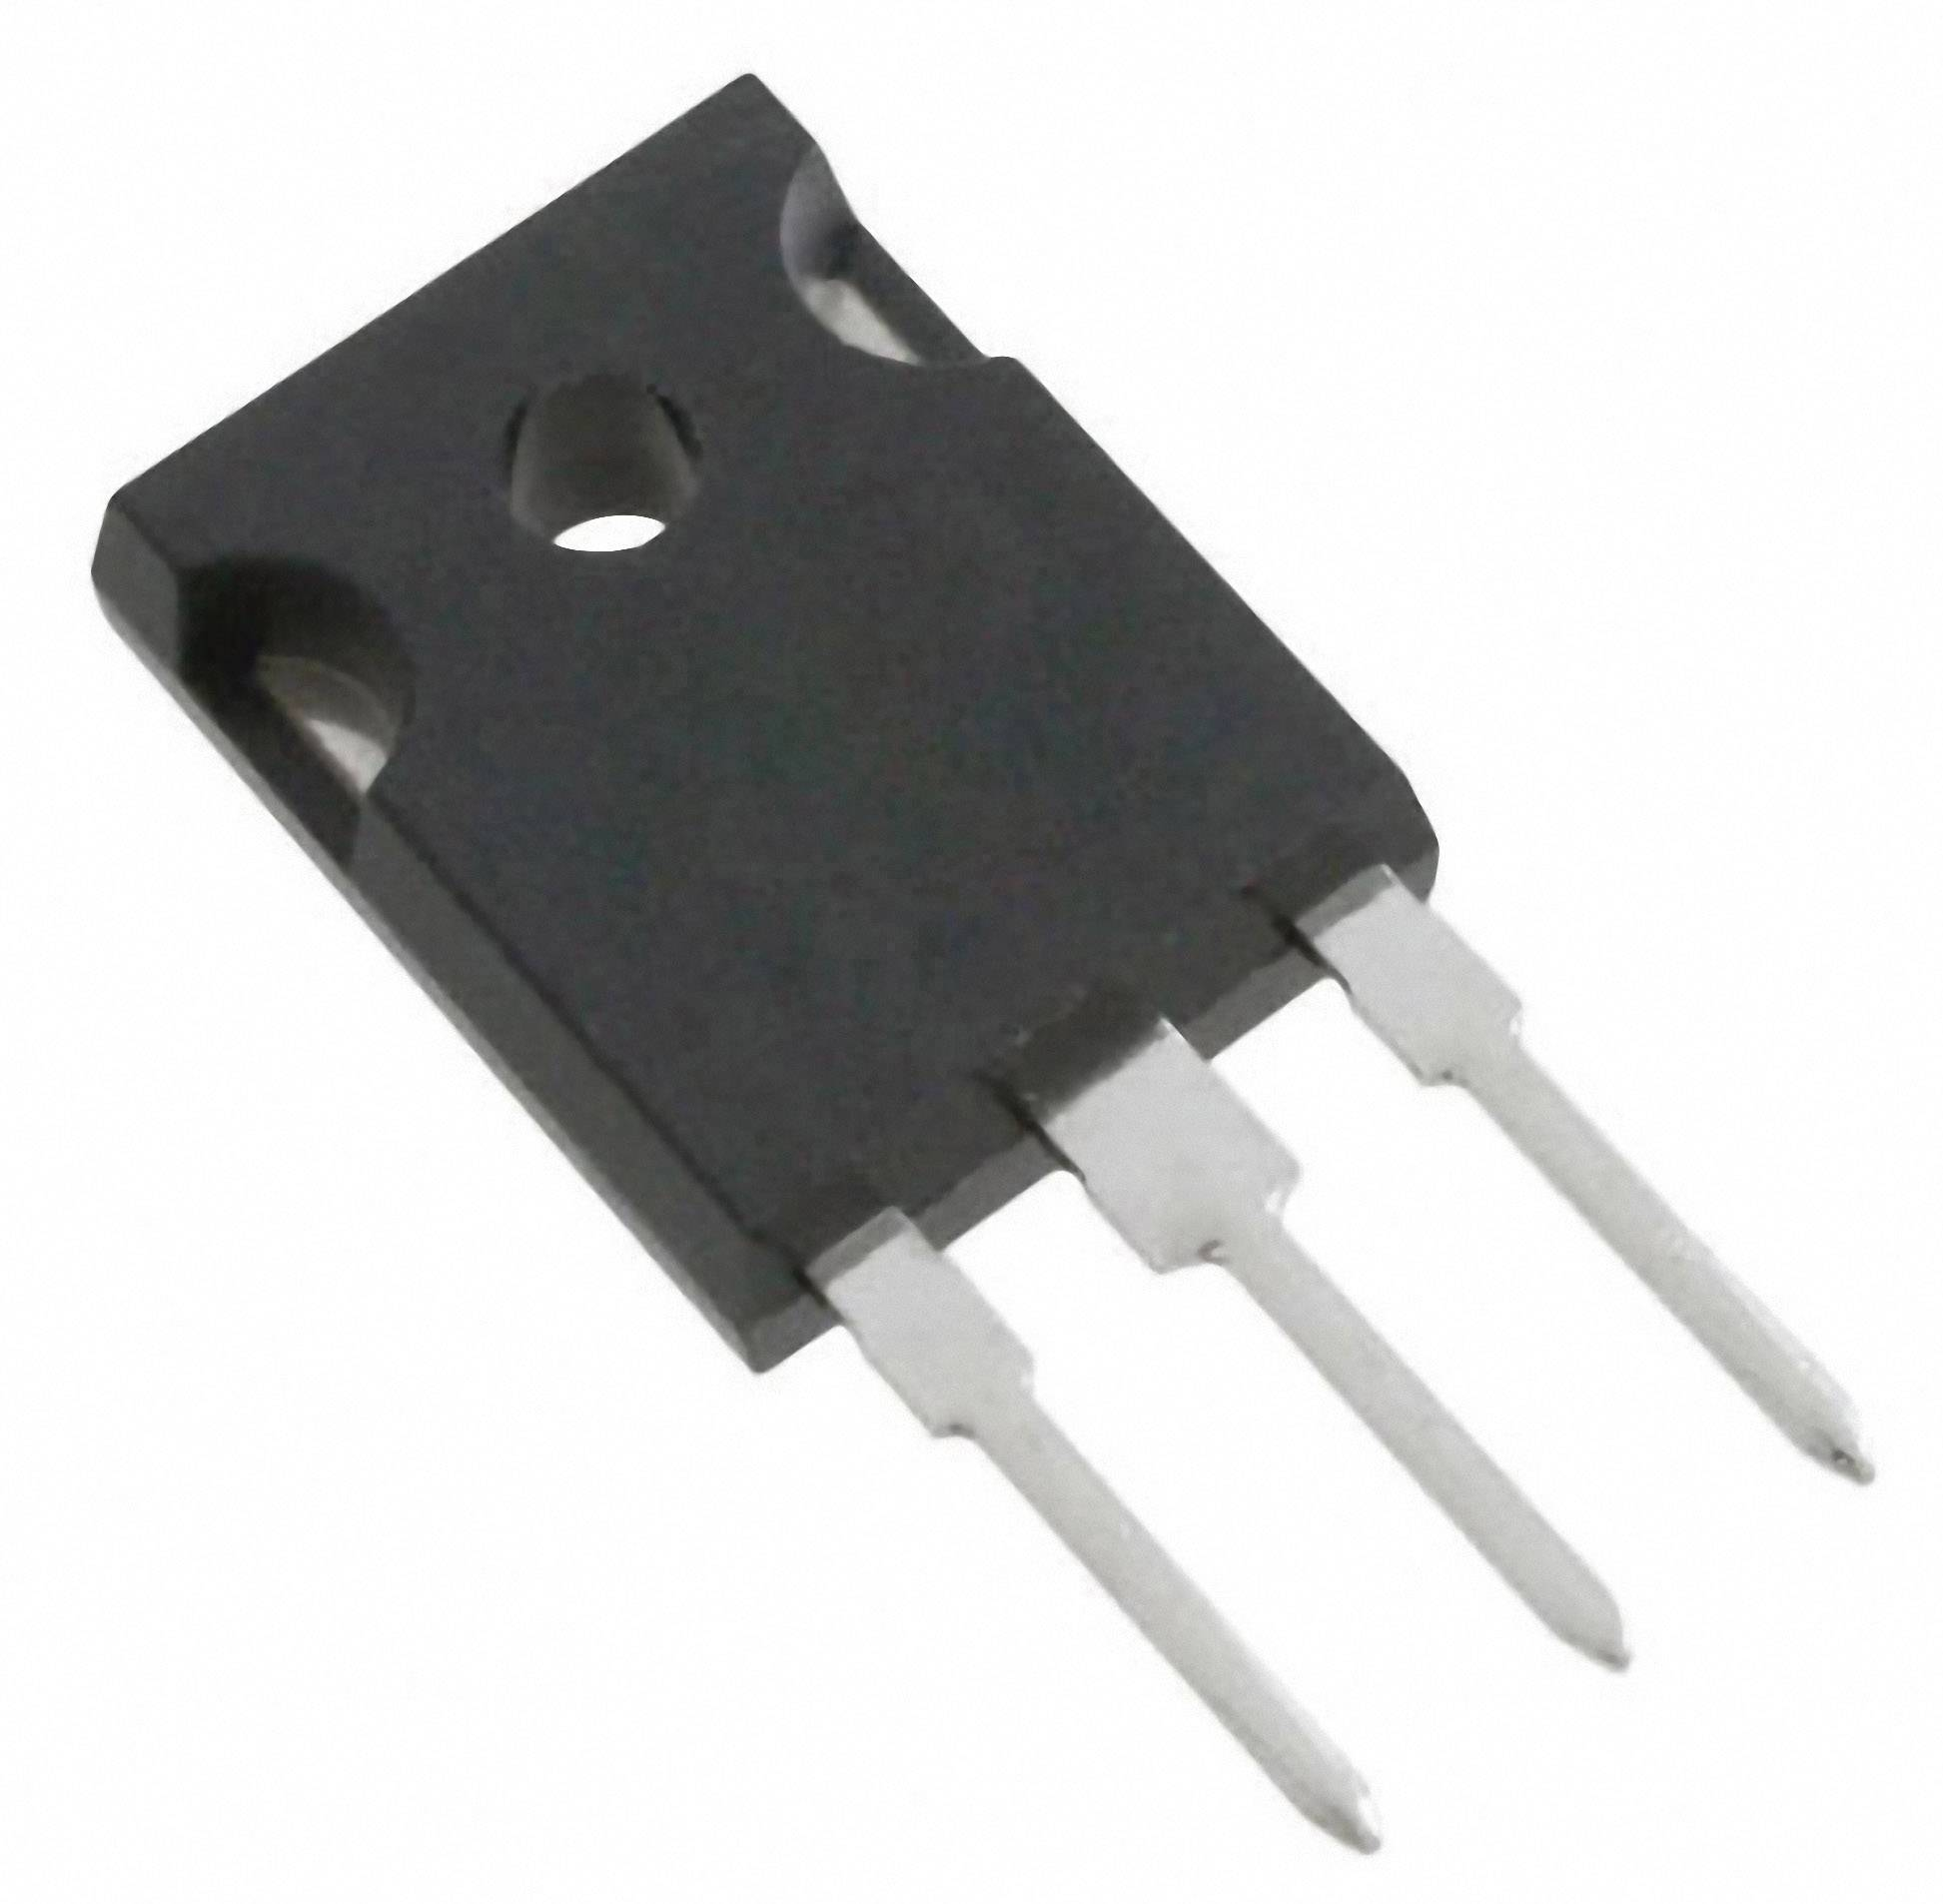 MOSFET Fairchild Semiconductor N kanál N-CH FCH47N60F_F133 TO-247-3 FSC